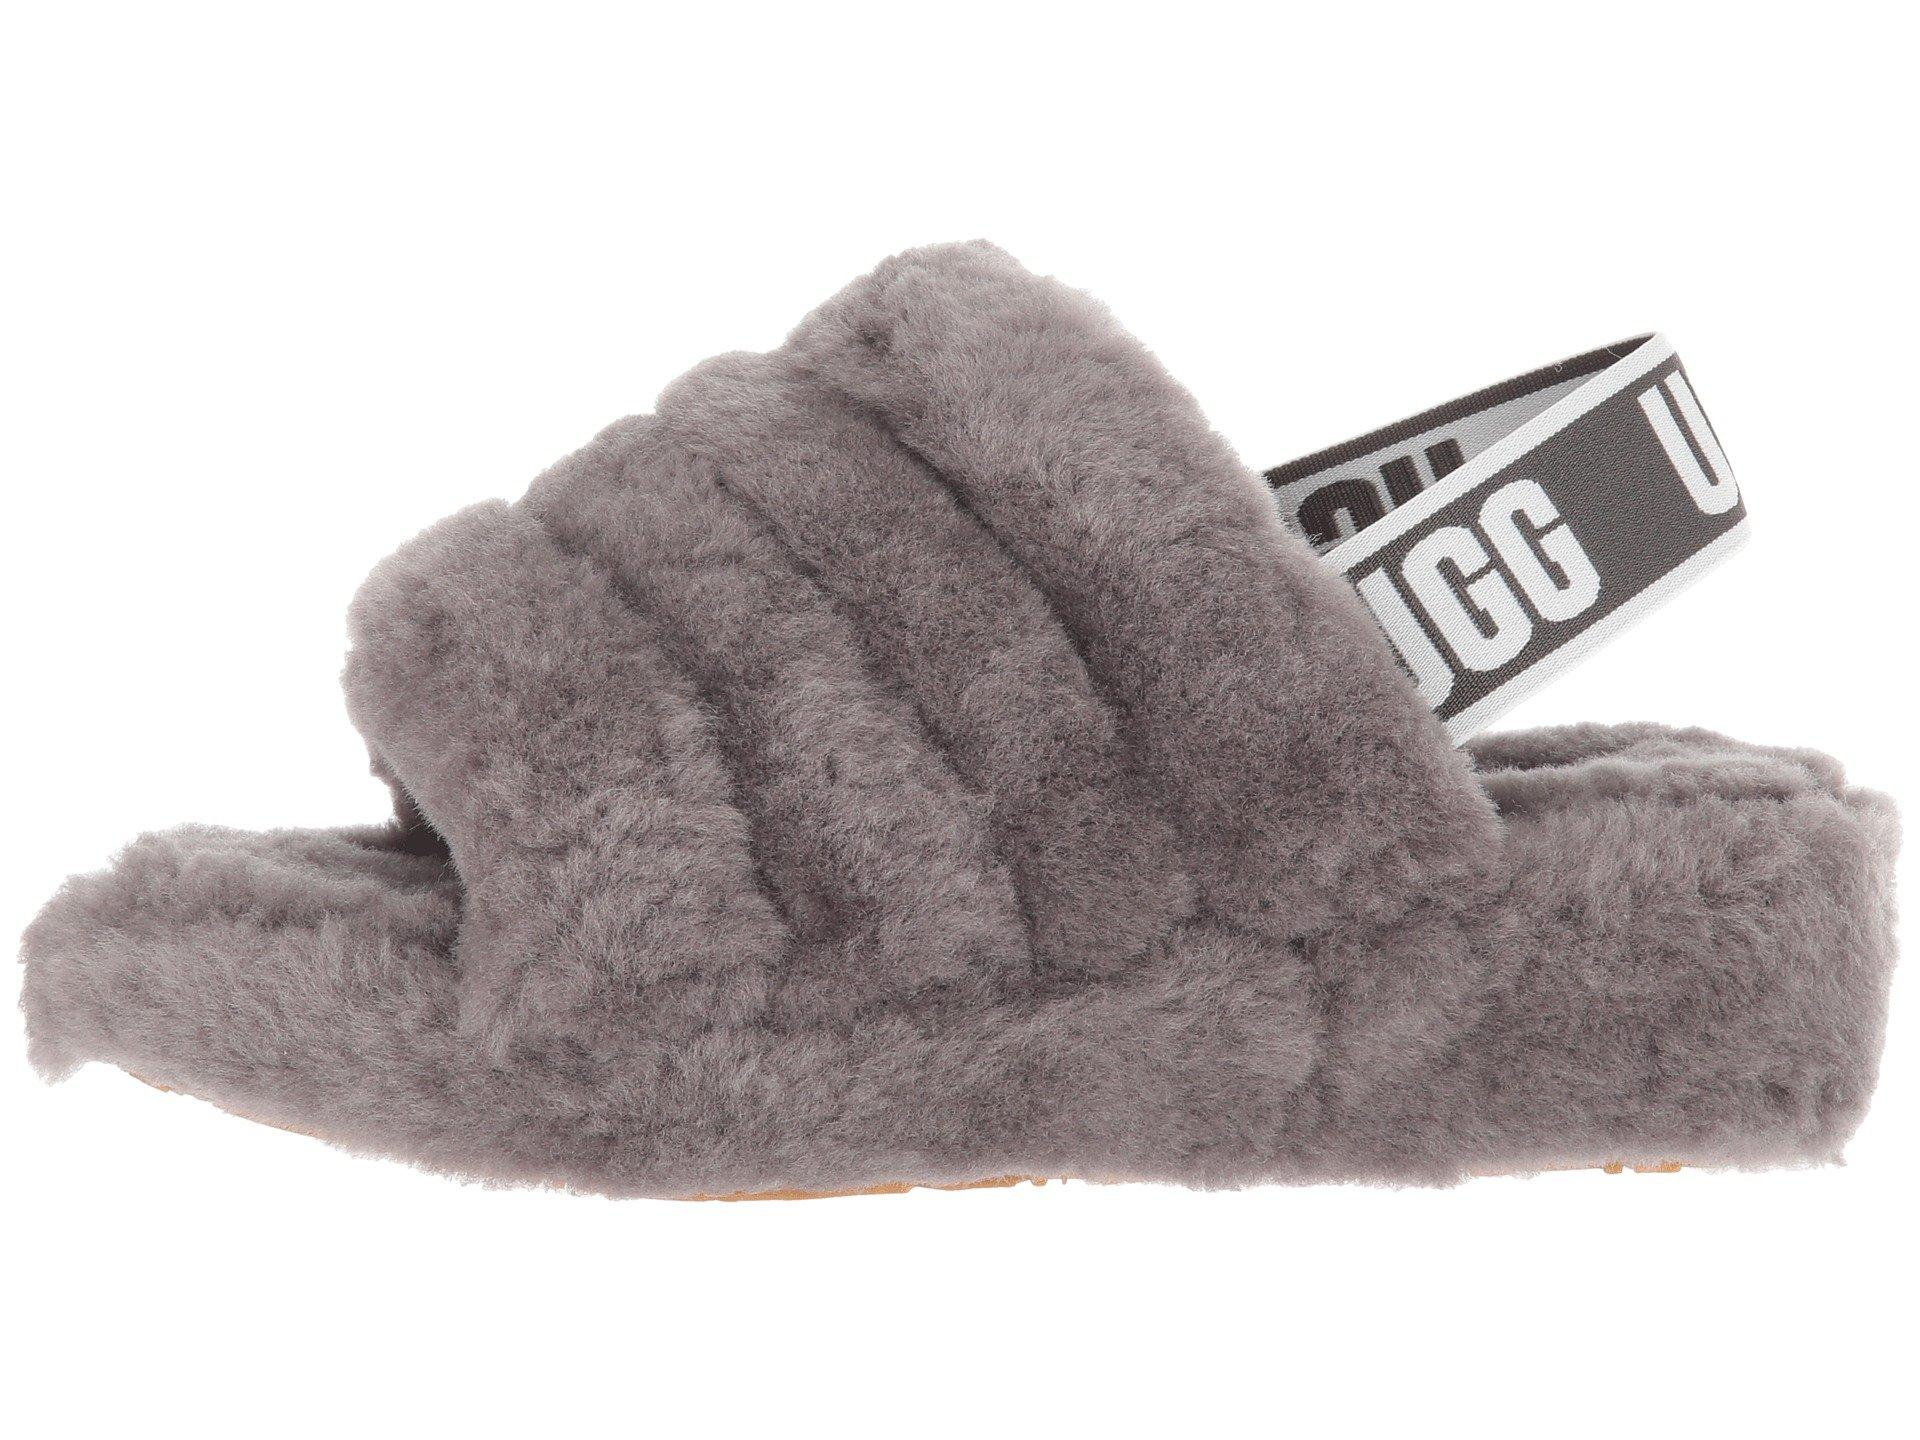 d4e4451a8002 Lyst - UGG Fluff Yeah Fur Slides in Gray - Save 37%